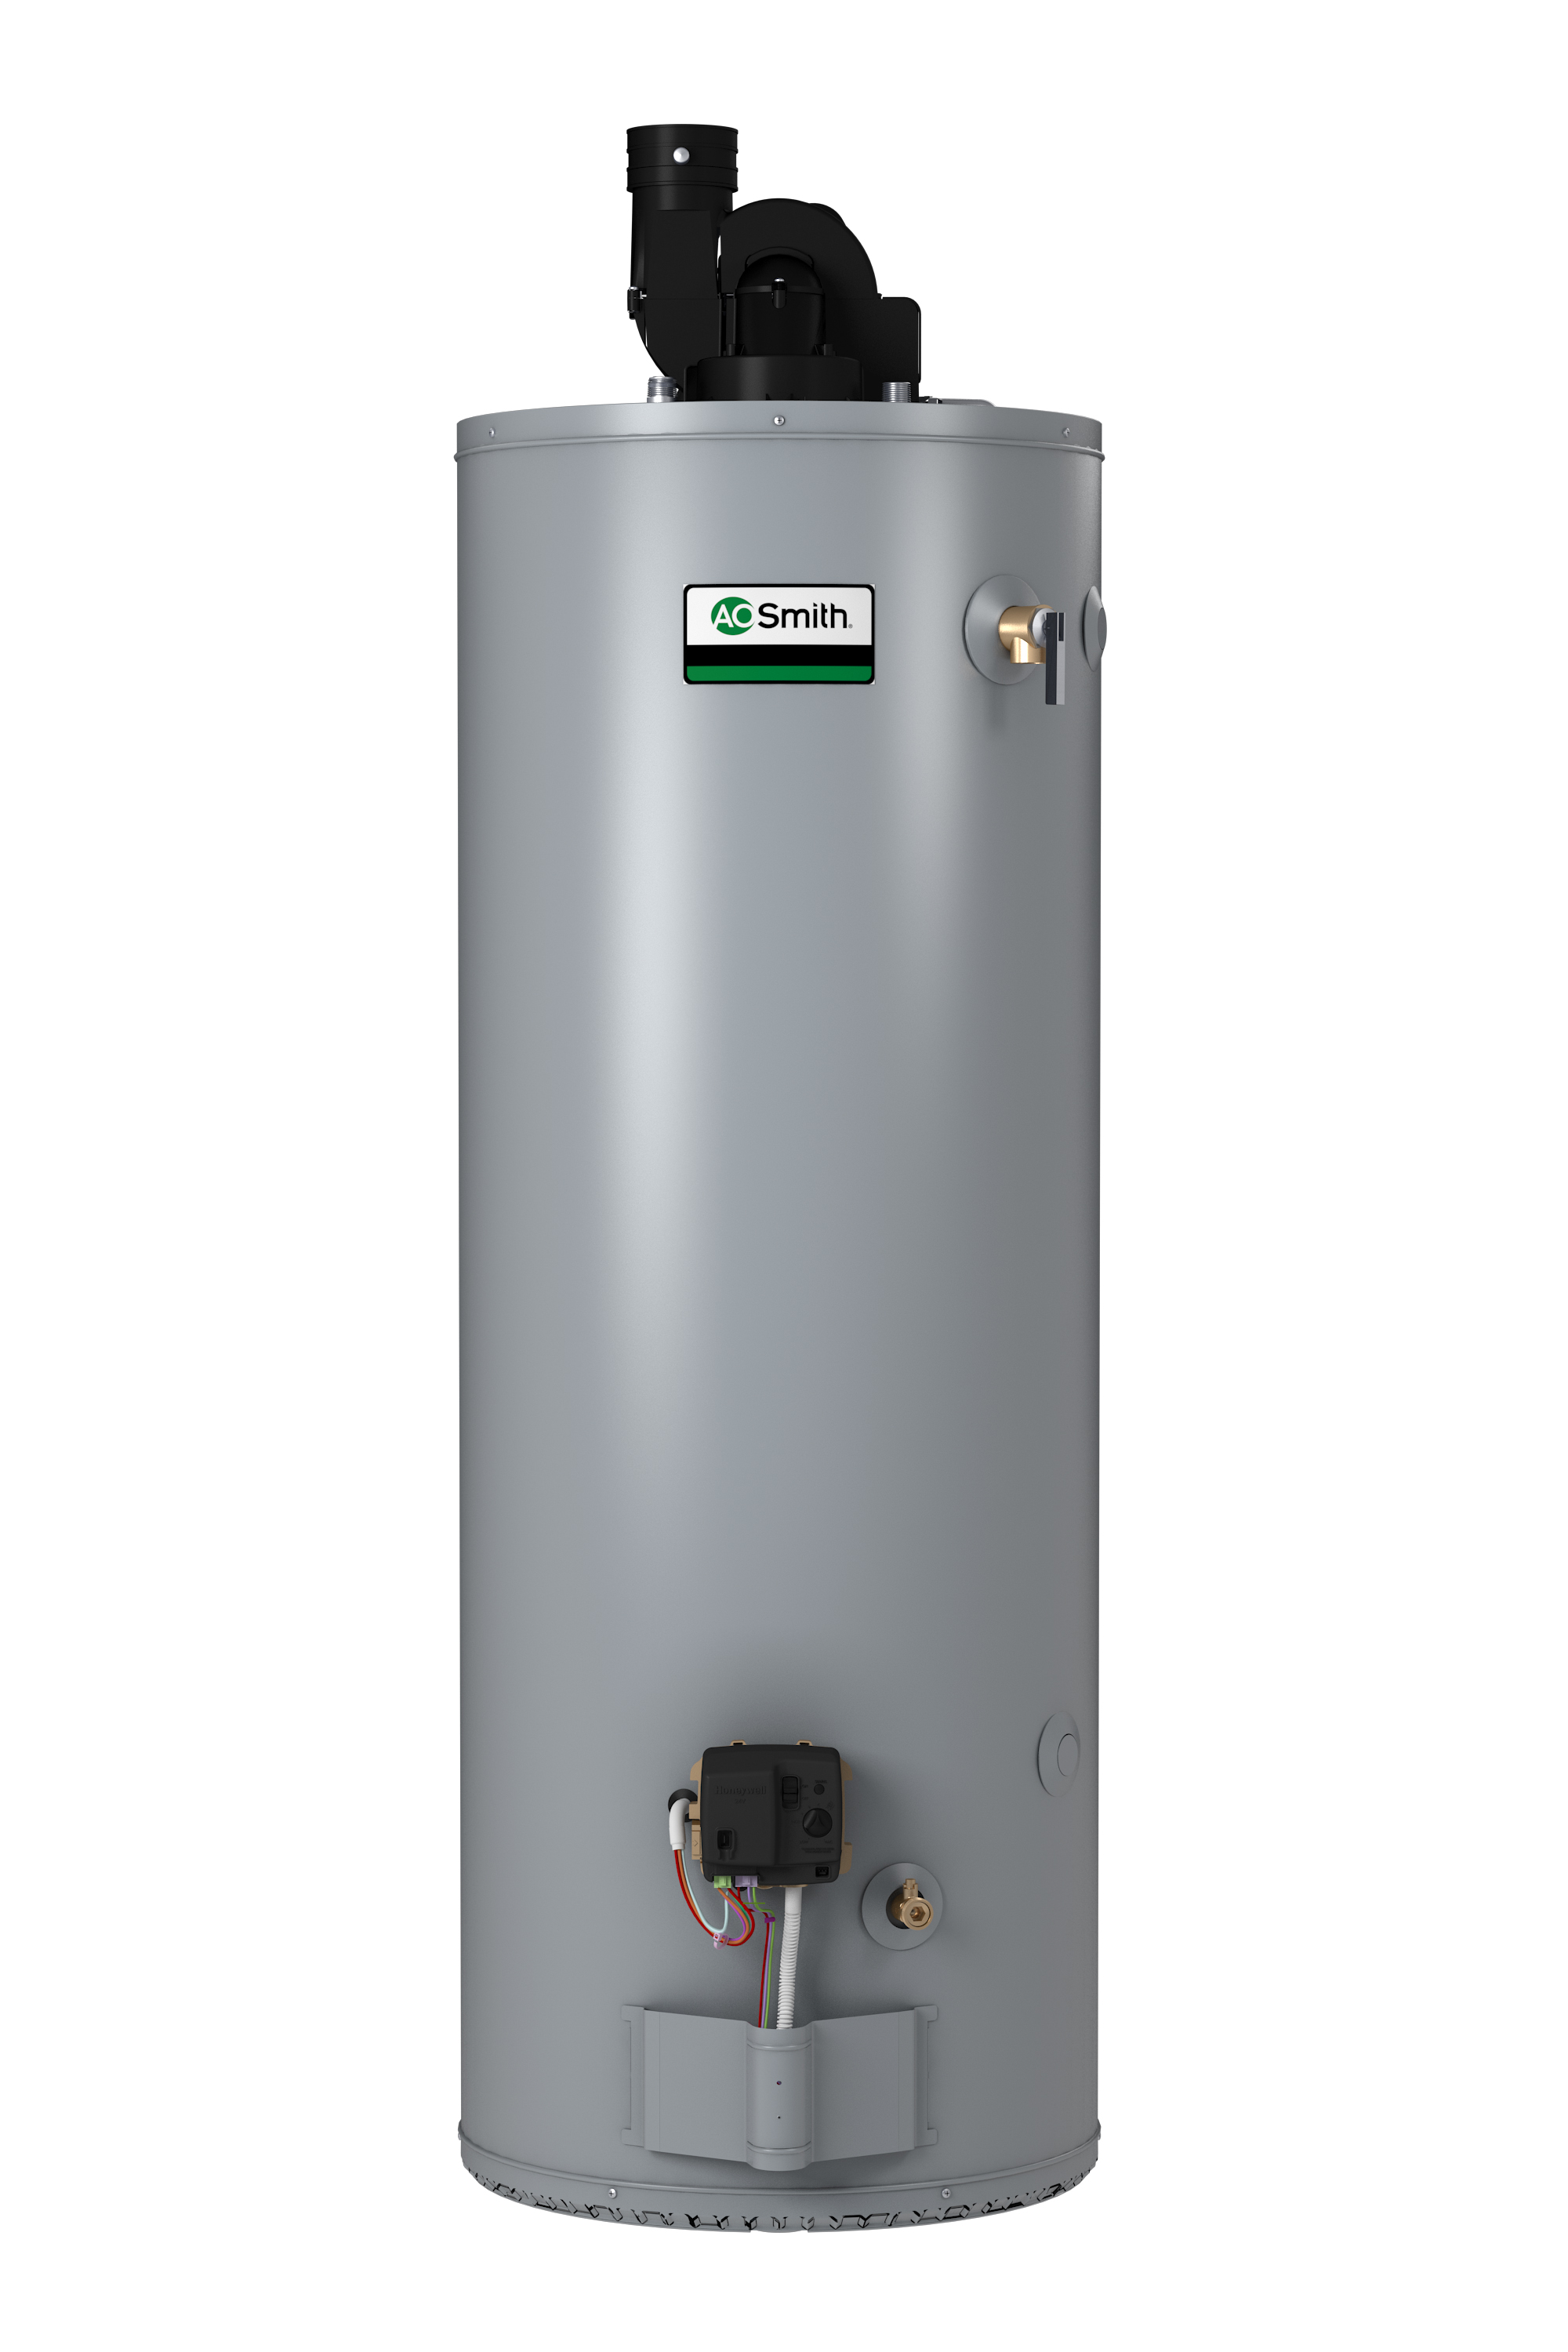 AO SMITH BPD-80: 75 GALLON, 76,000 BTU, 3inch OR 4inch VENT, CONSERVATIONIST POWER DIRECT VENT, SINGLE FLUE, NATURAL GAS COMMERICAL WATER HEATER